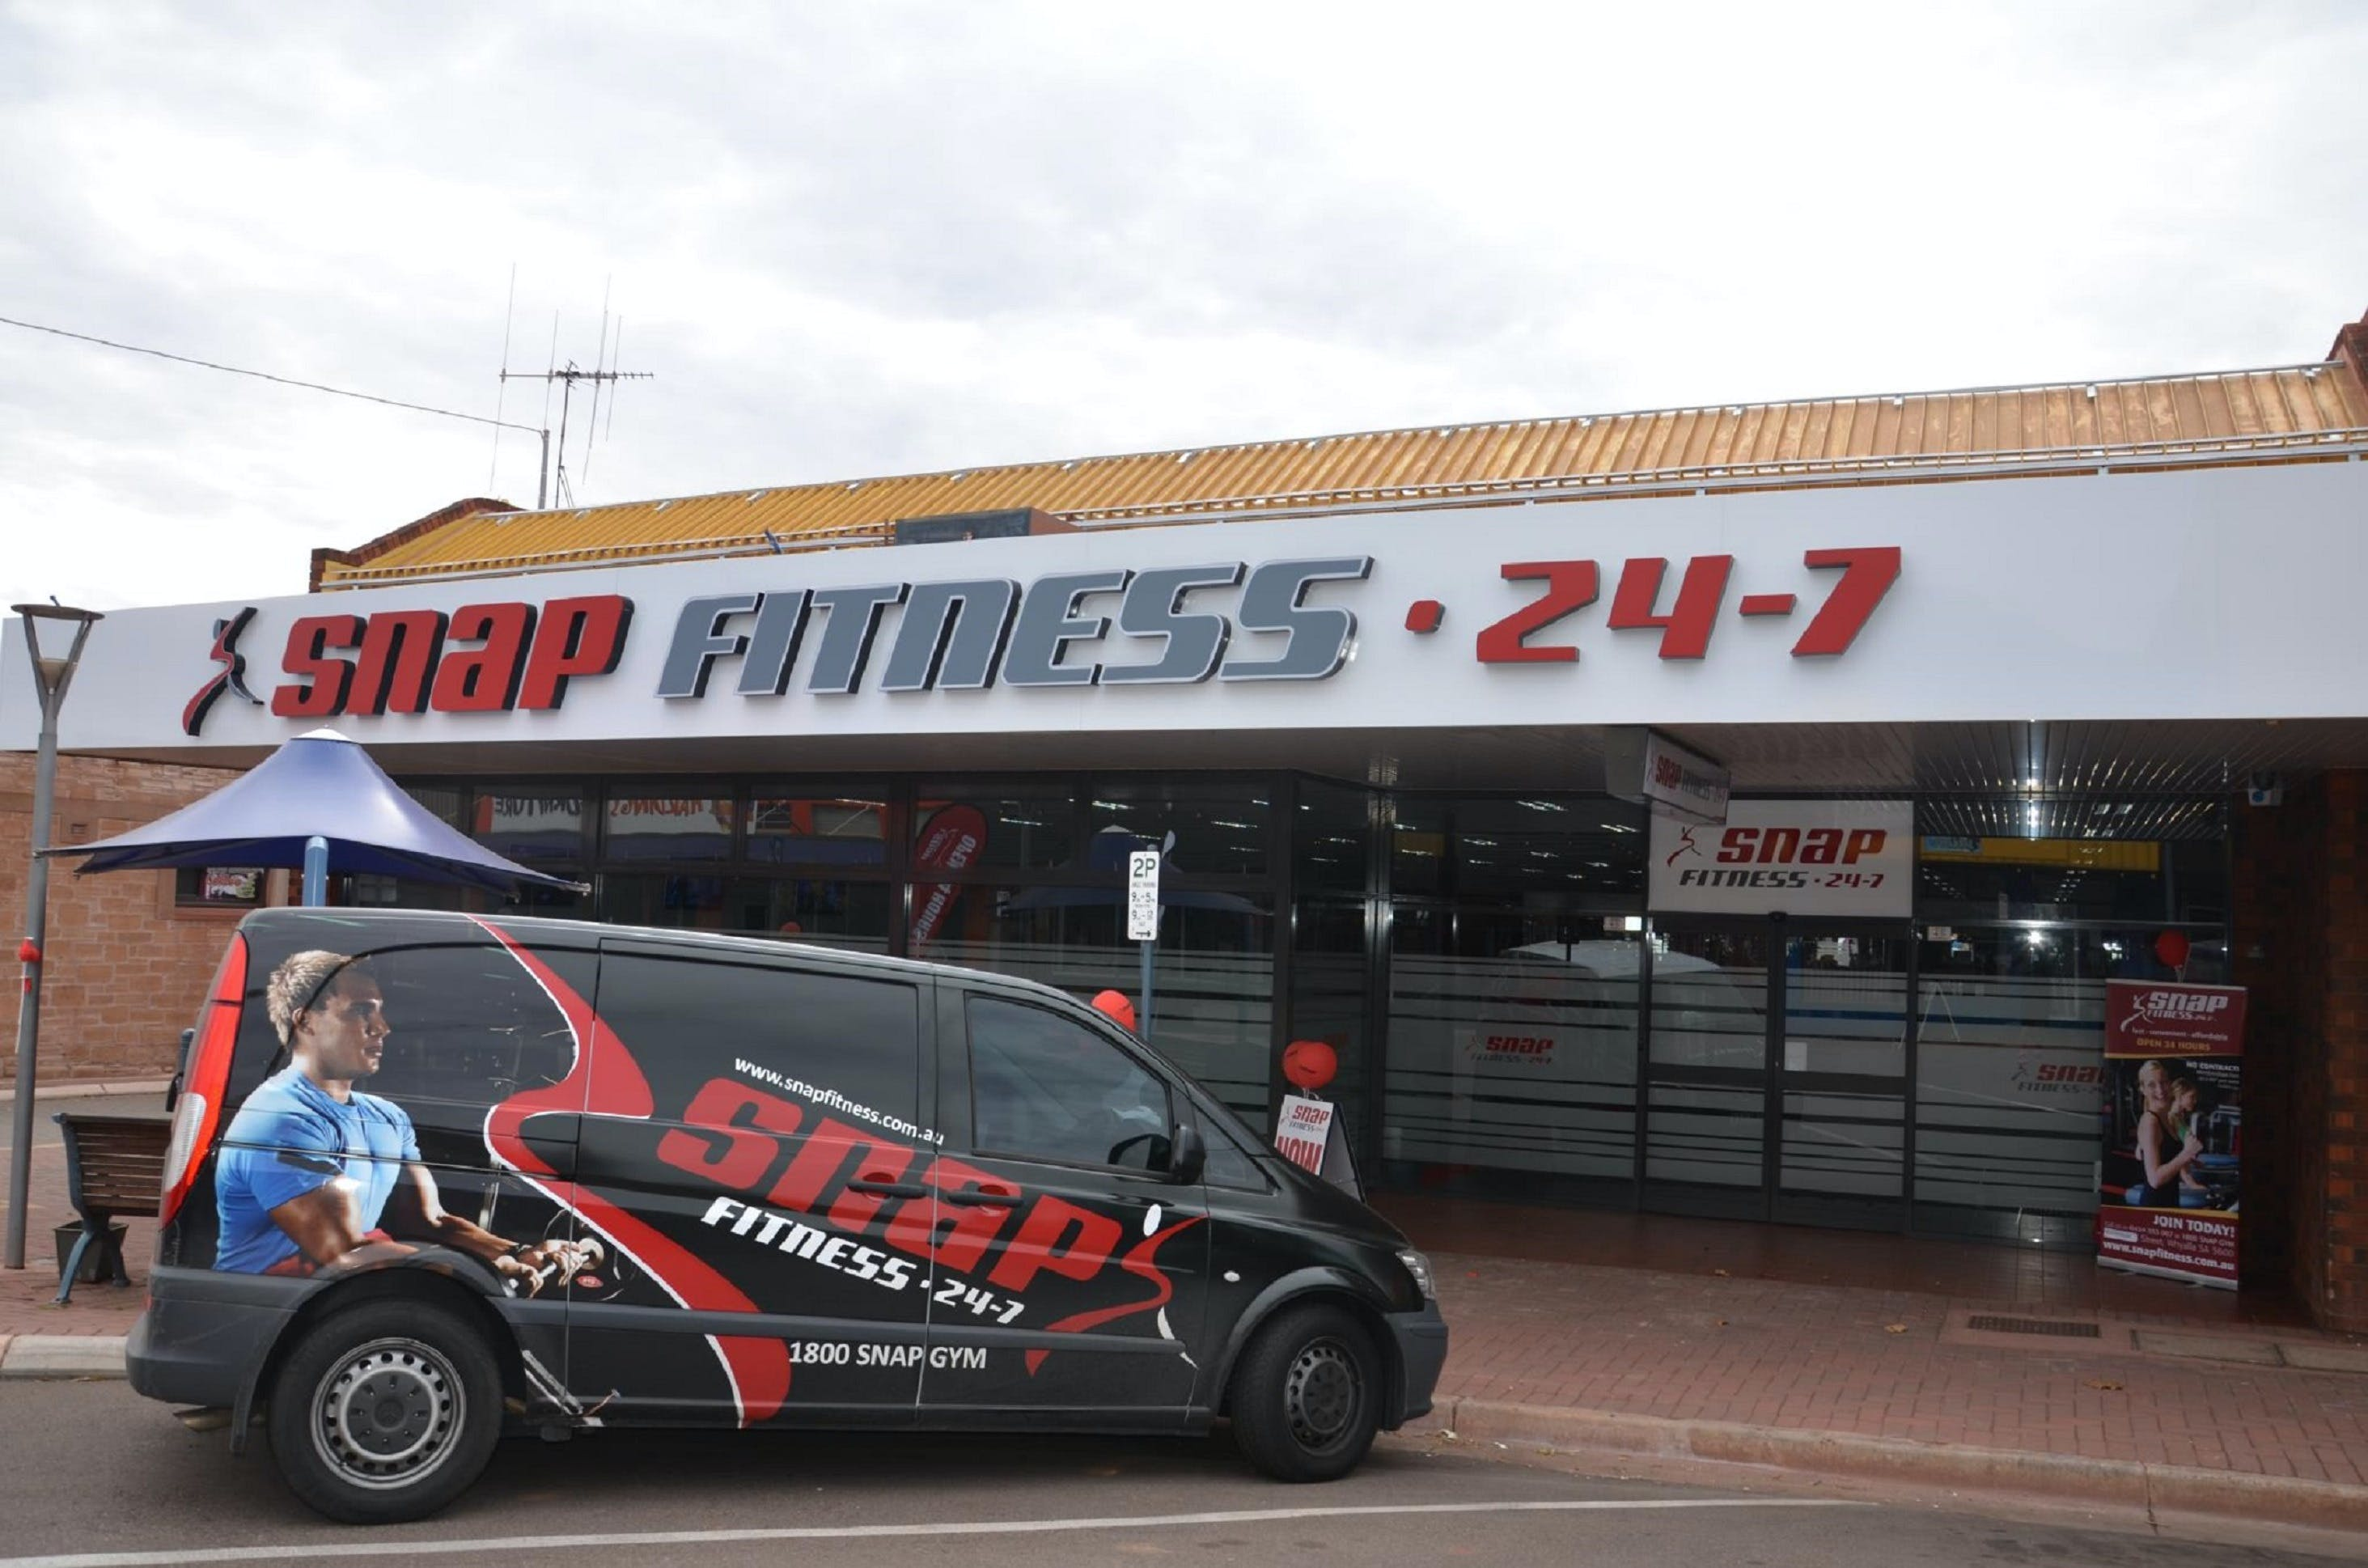 Snap Fitness Whyalla 24/7 gym - Tourism Bookings WA